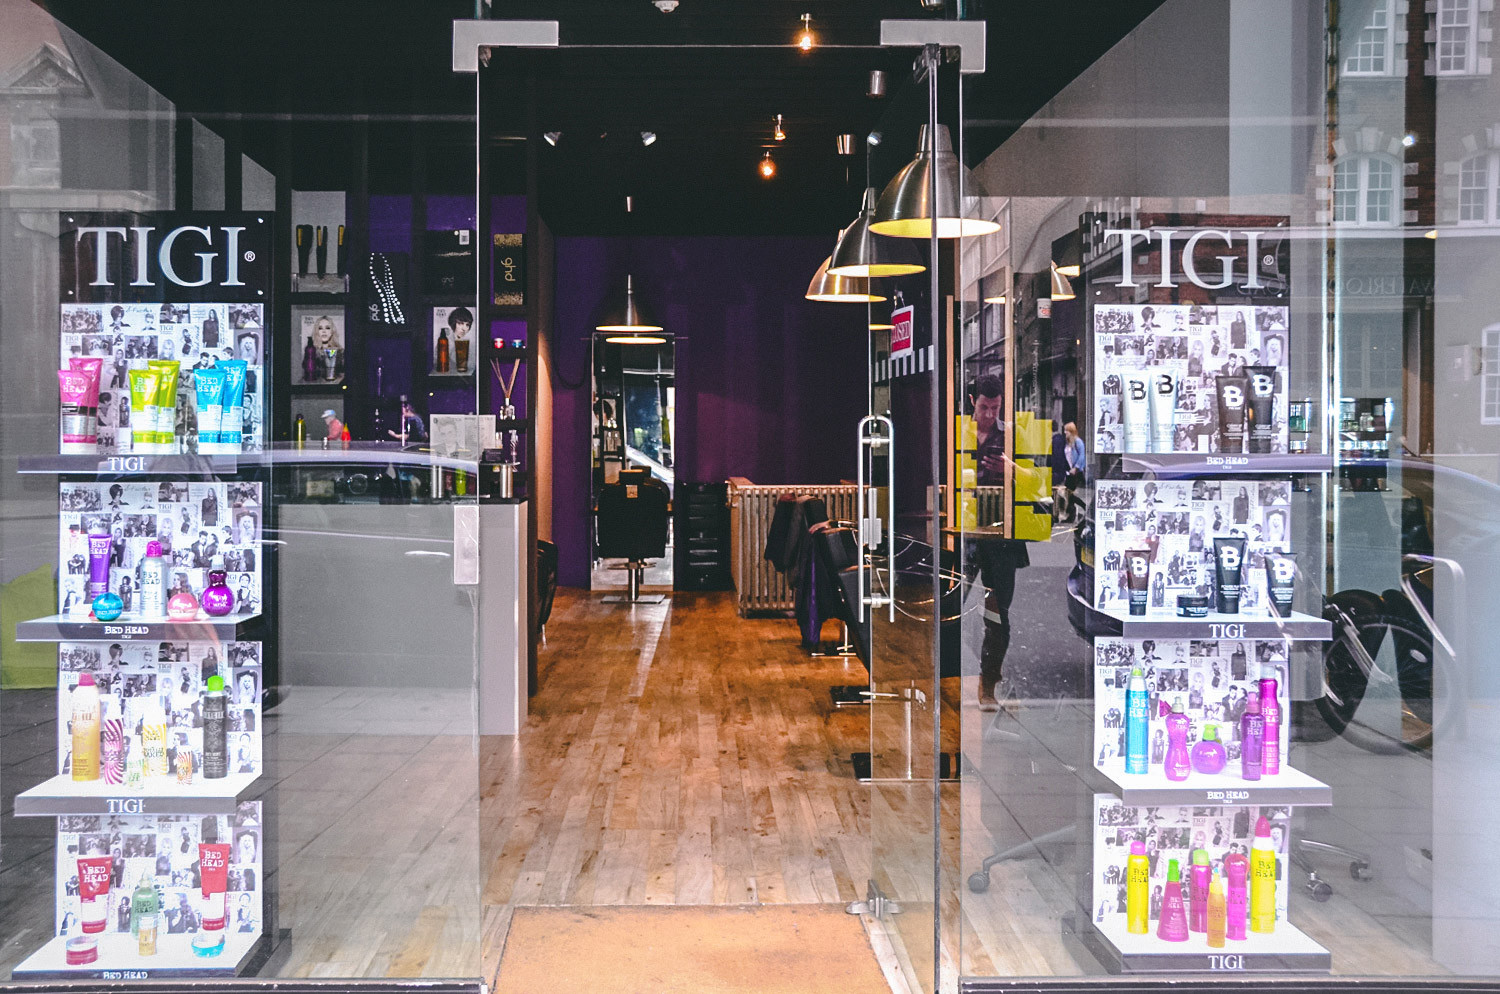 The window display layout design and entrance of the Reeds of London hair salon